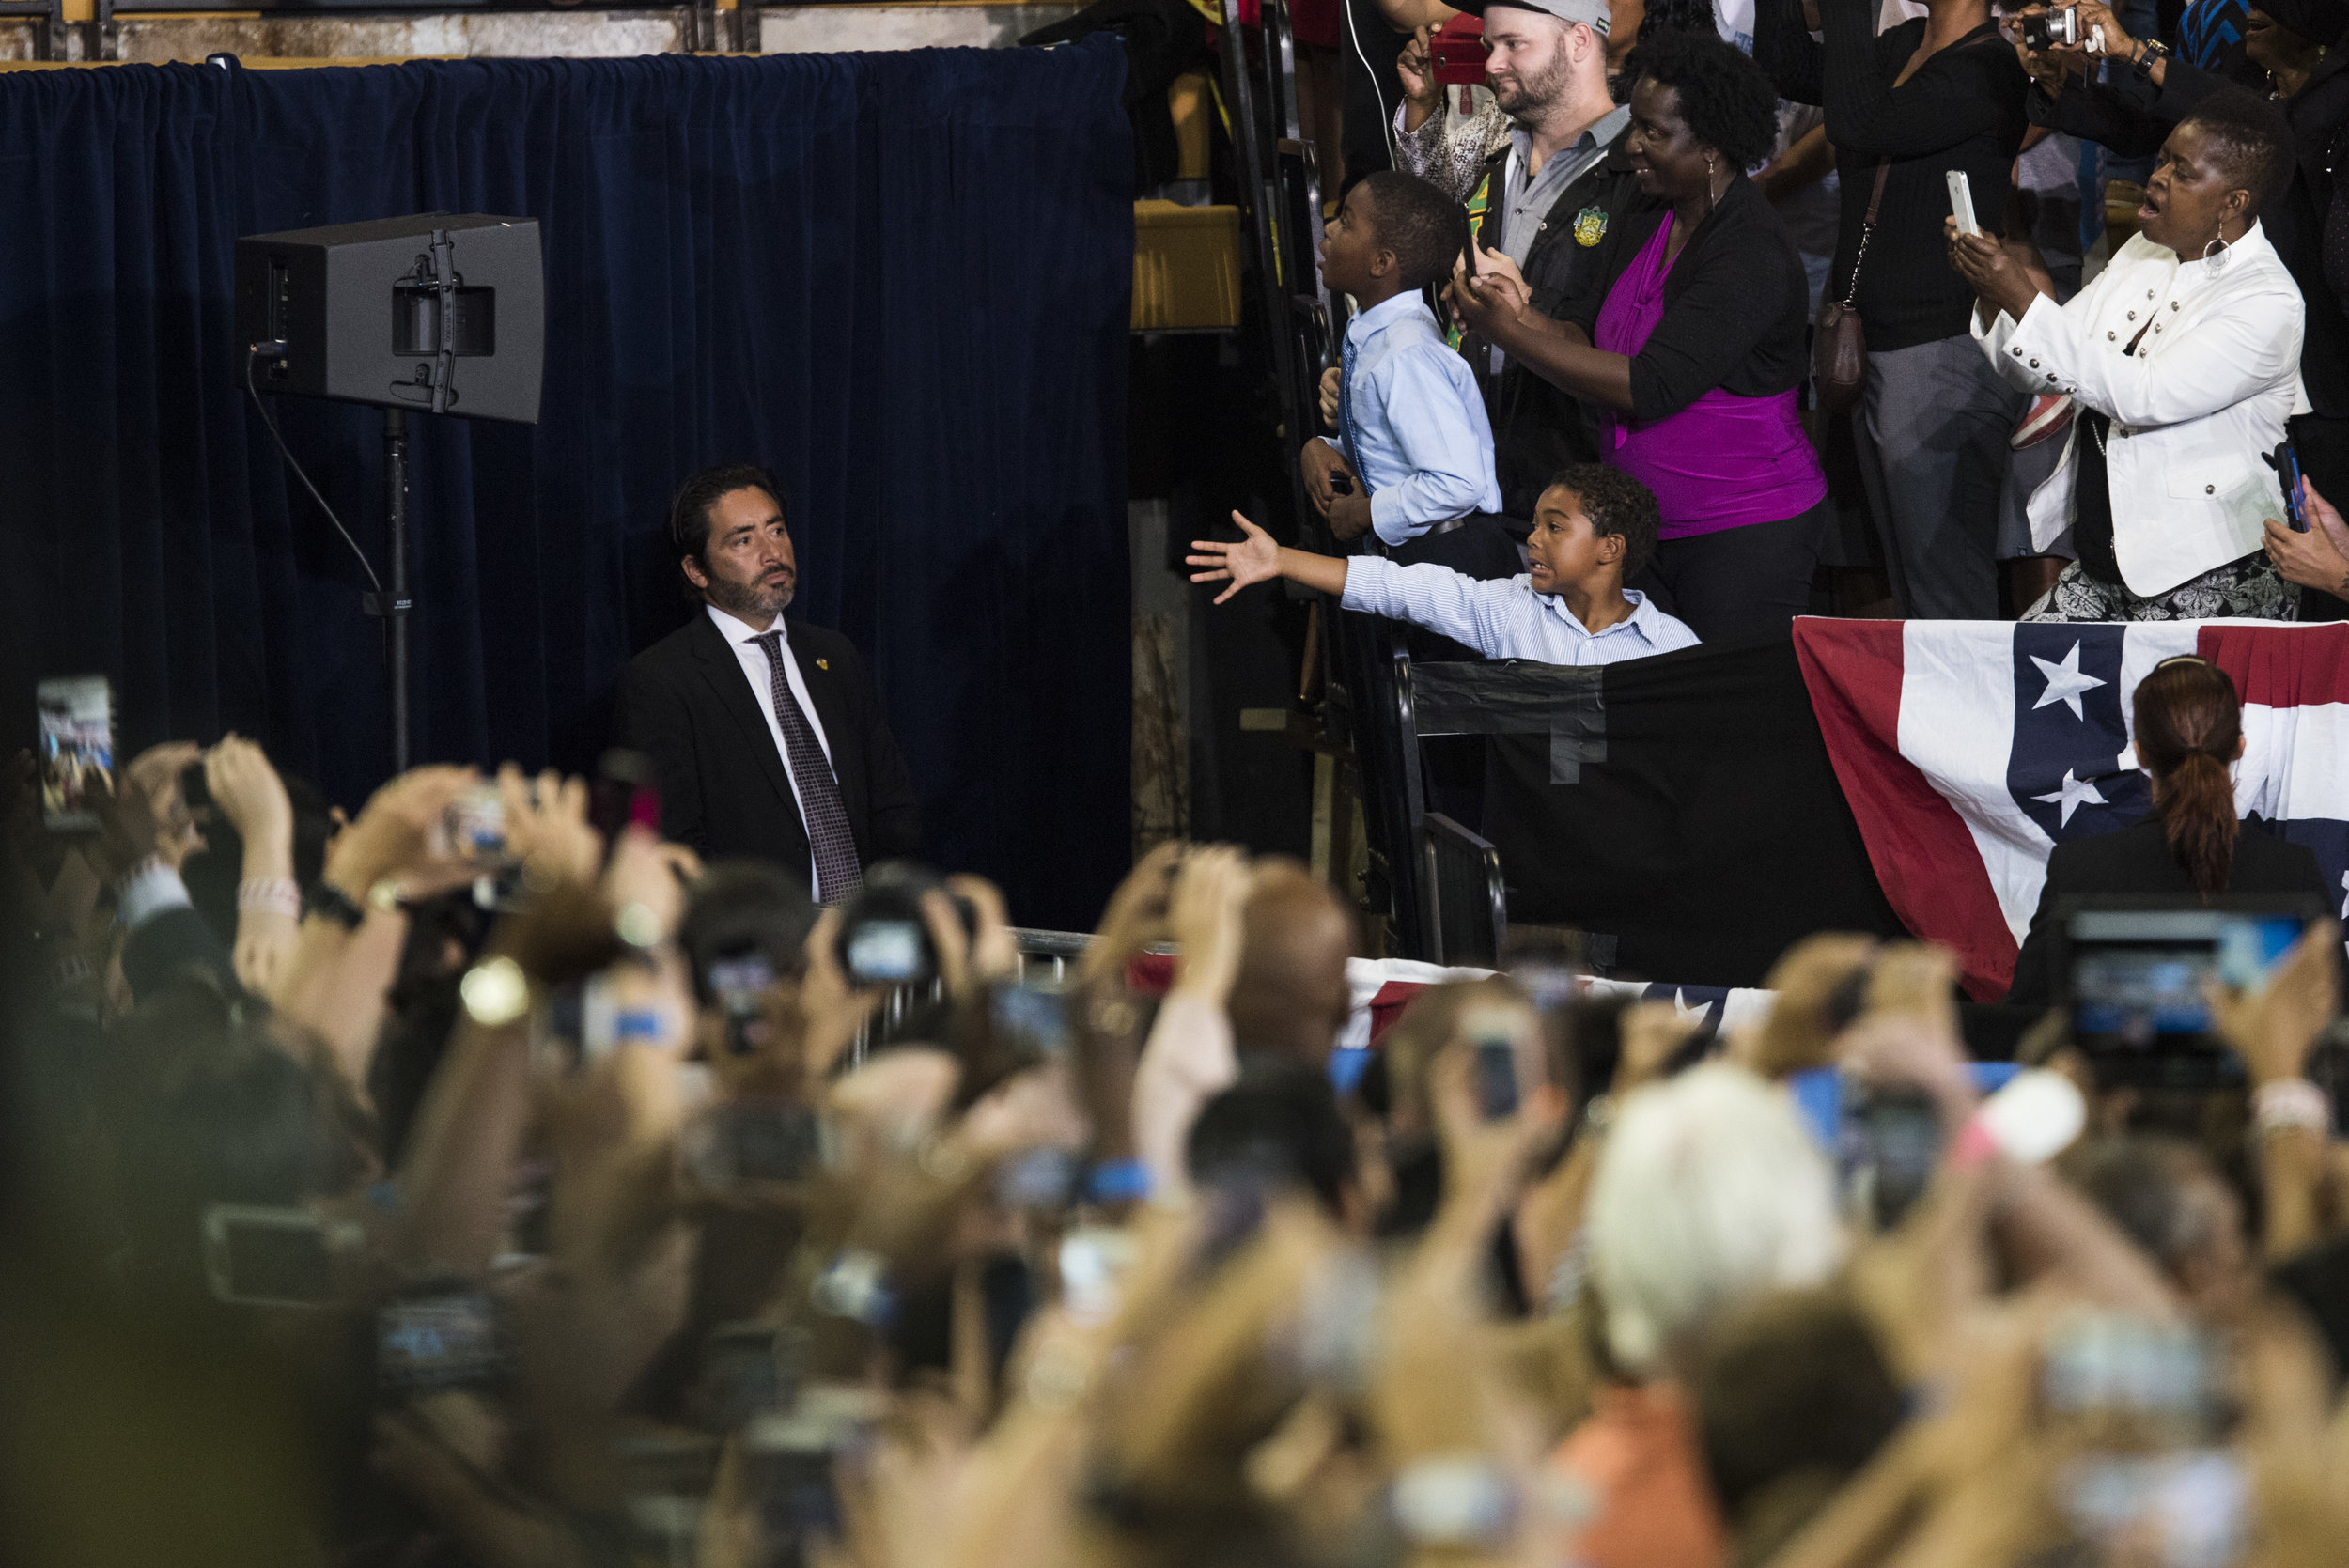 I saw this kid about 2 minutes before President Obama took the stage. I knew he was entering the stage from that side so I was hoping he would get a handshake from the president...